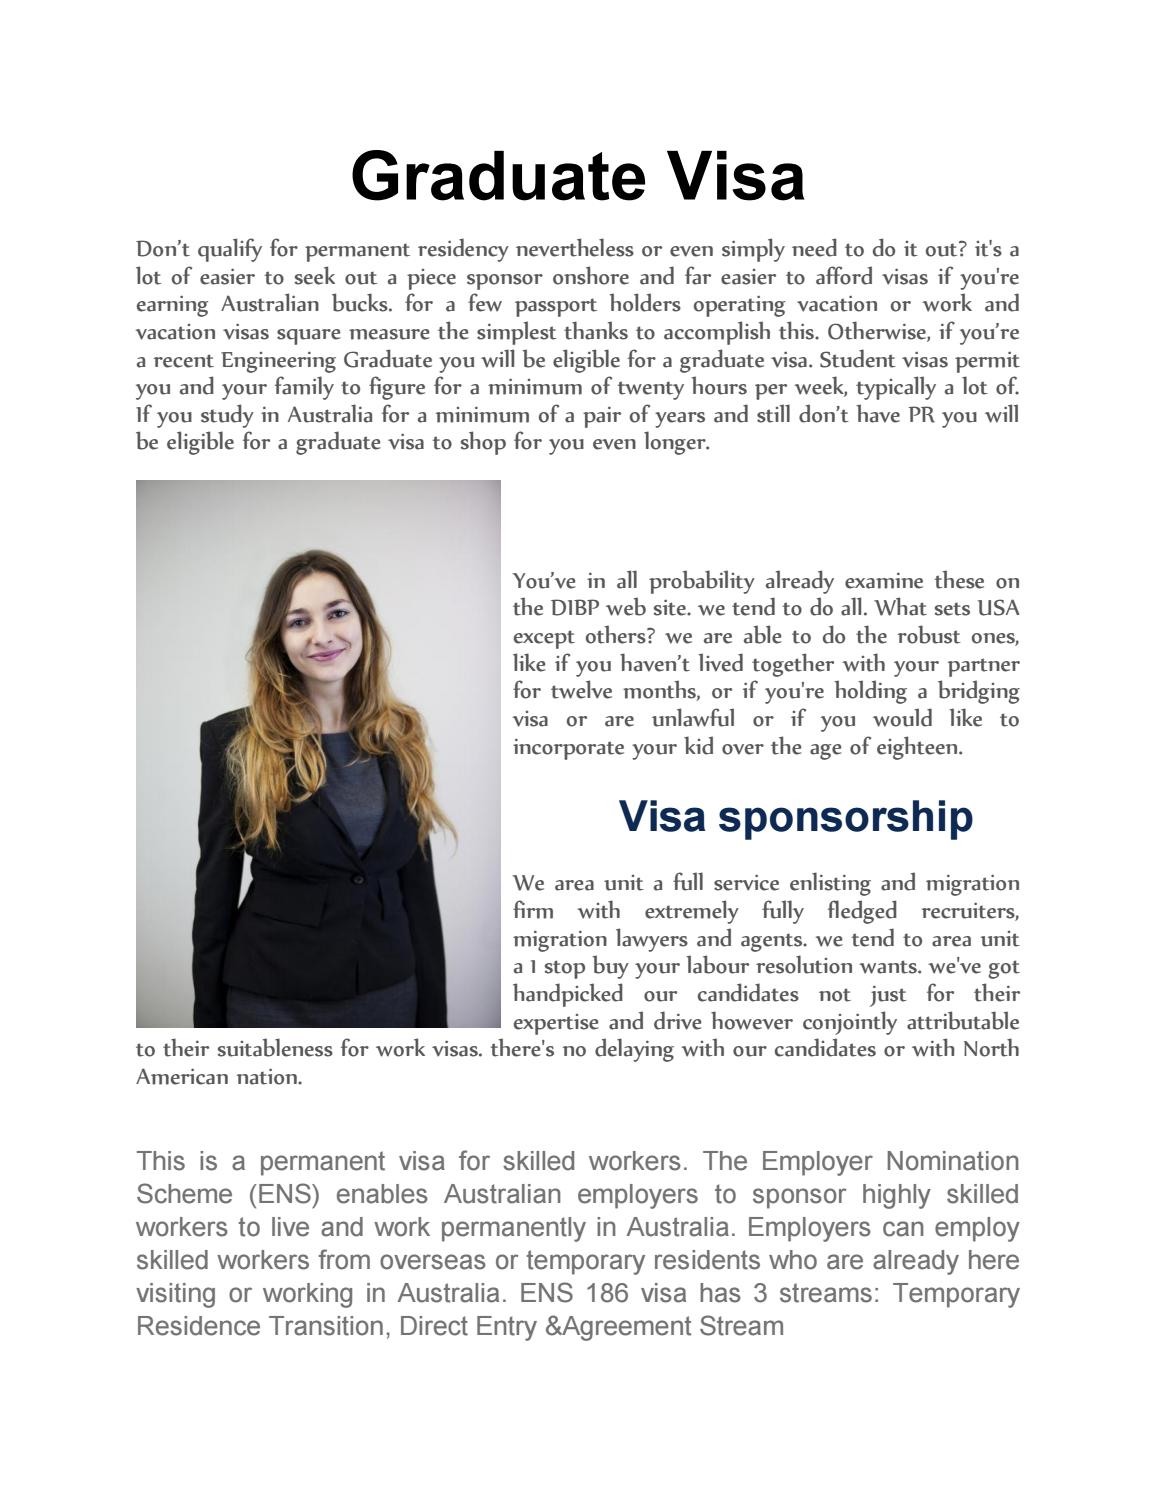 Graduate Visa By Devid Michle Issuu